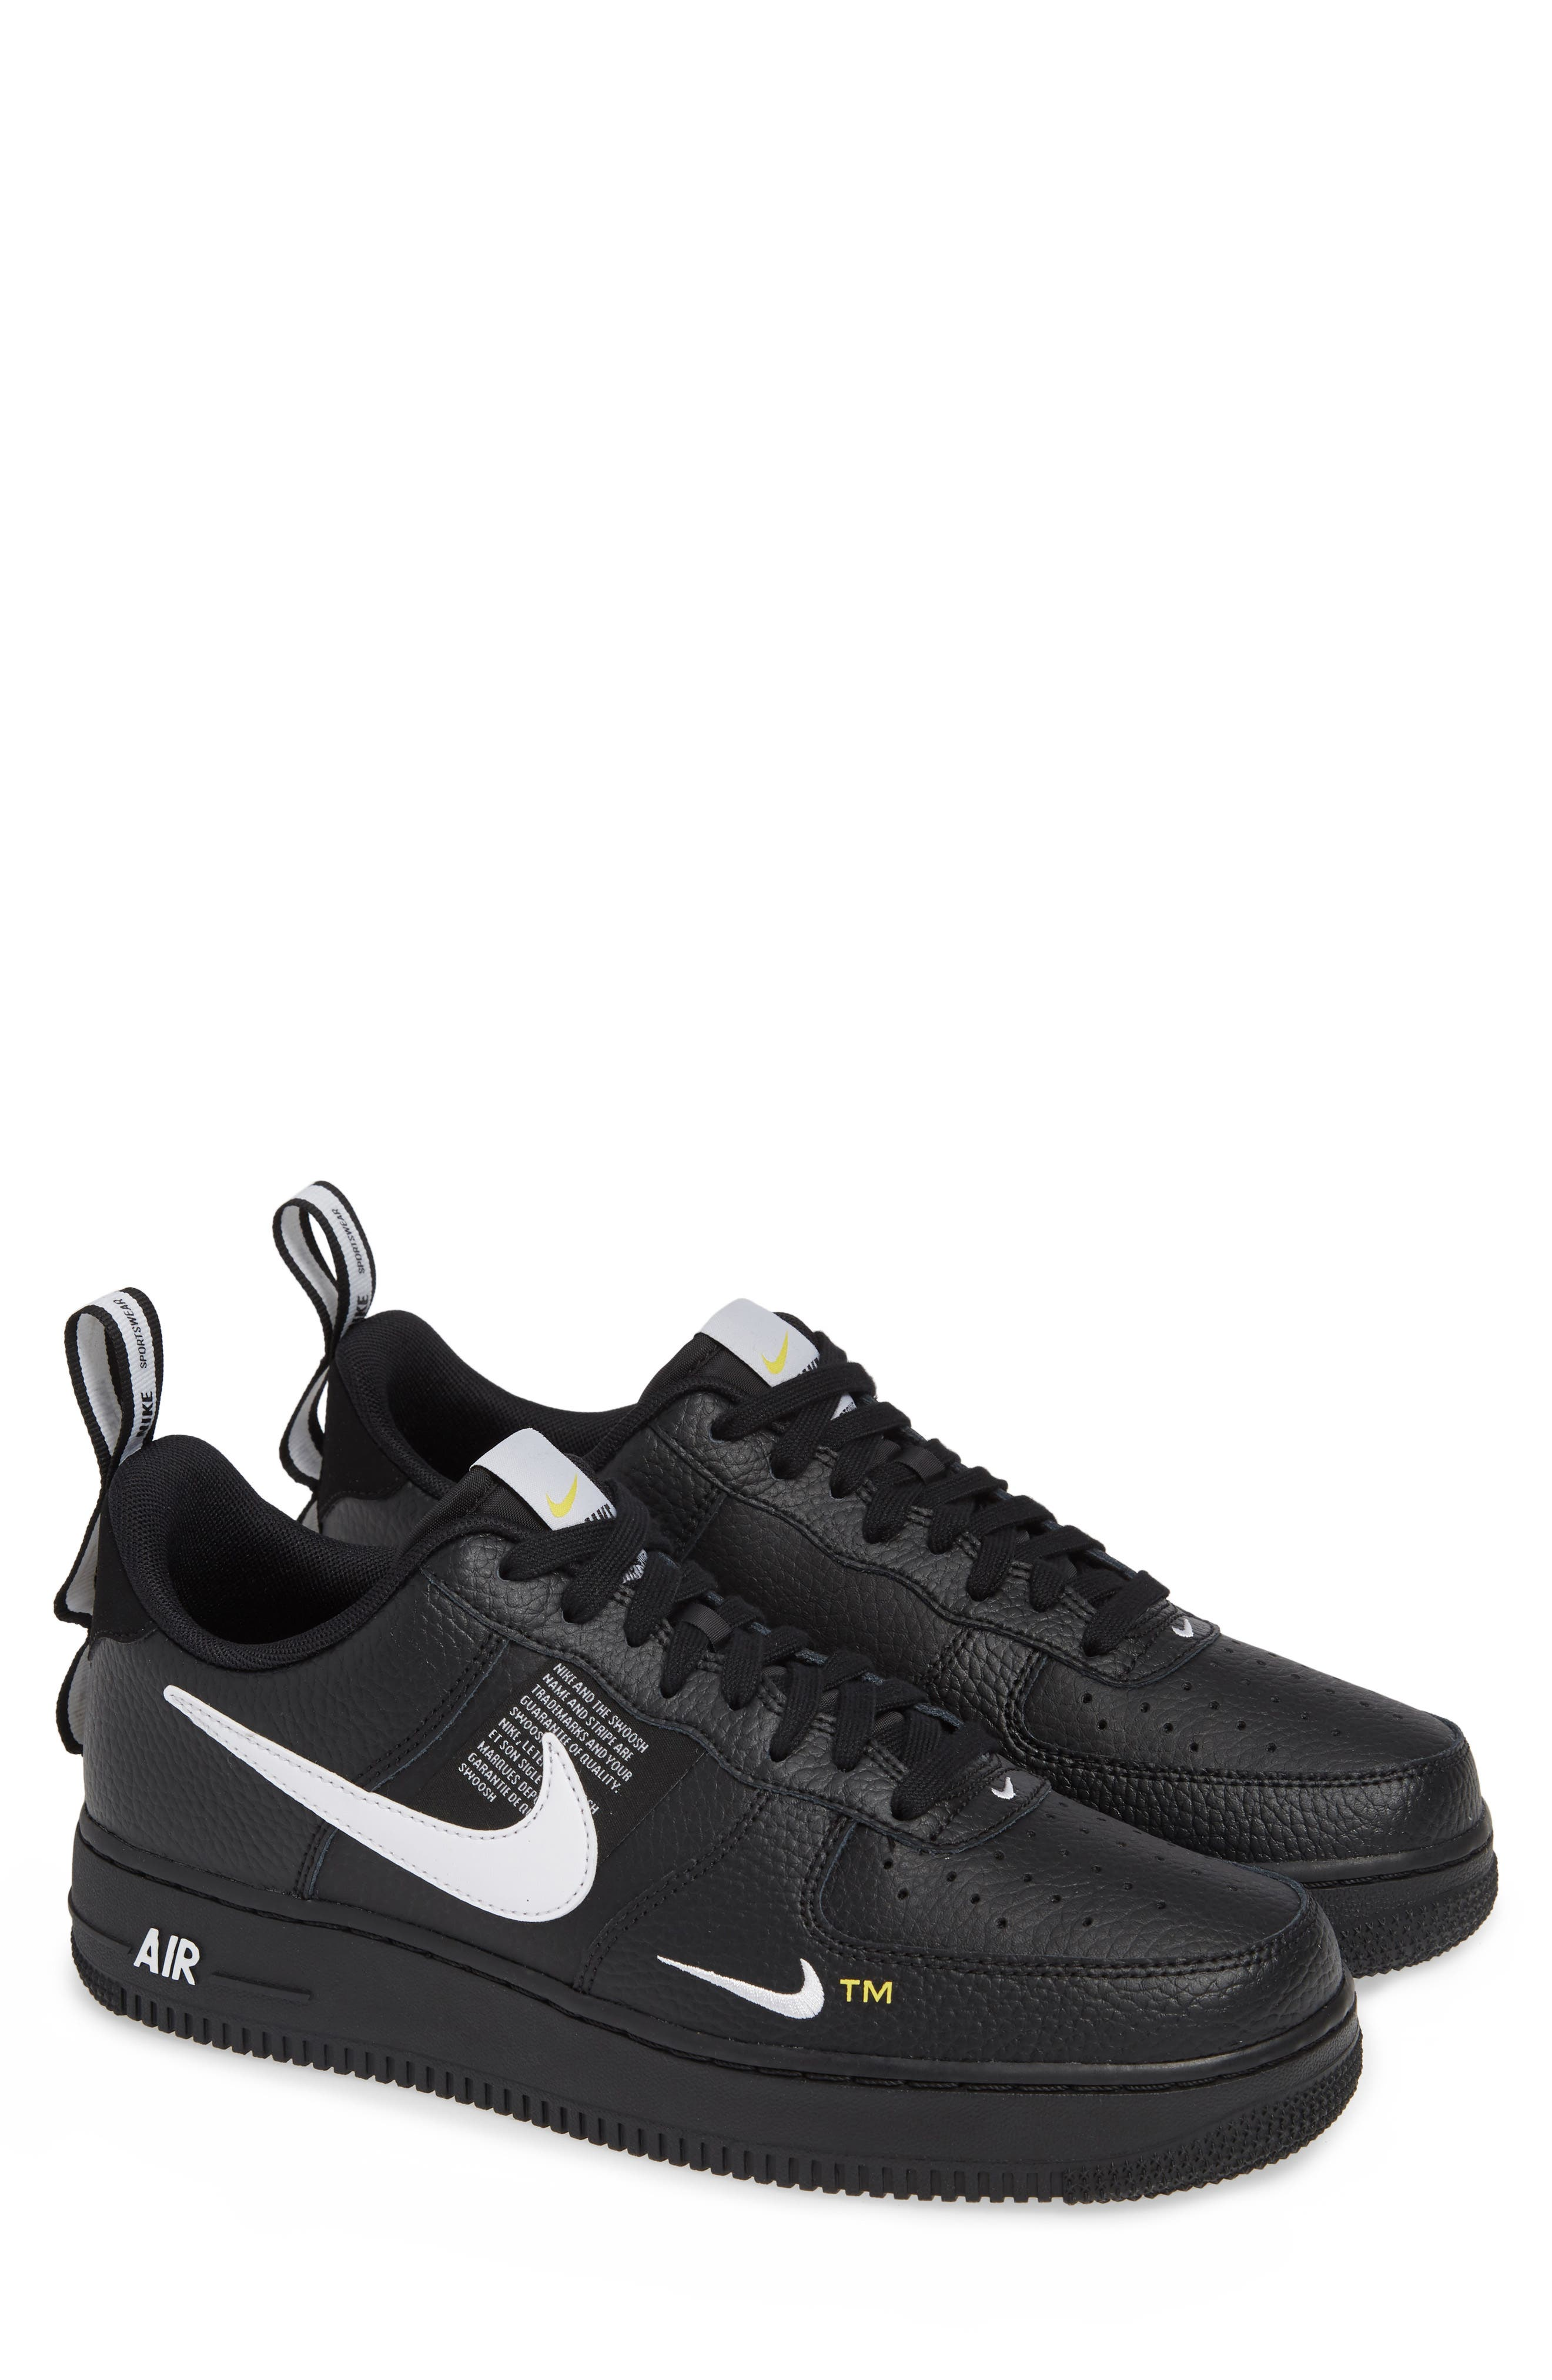 quality design 46cee 6f179 ... coupon for nike air force 1 07 lv8 utility sneaker men 50874 079f7